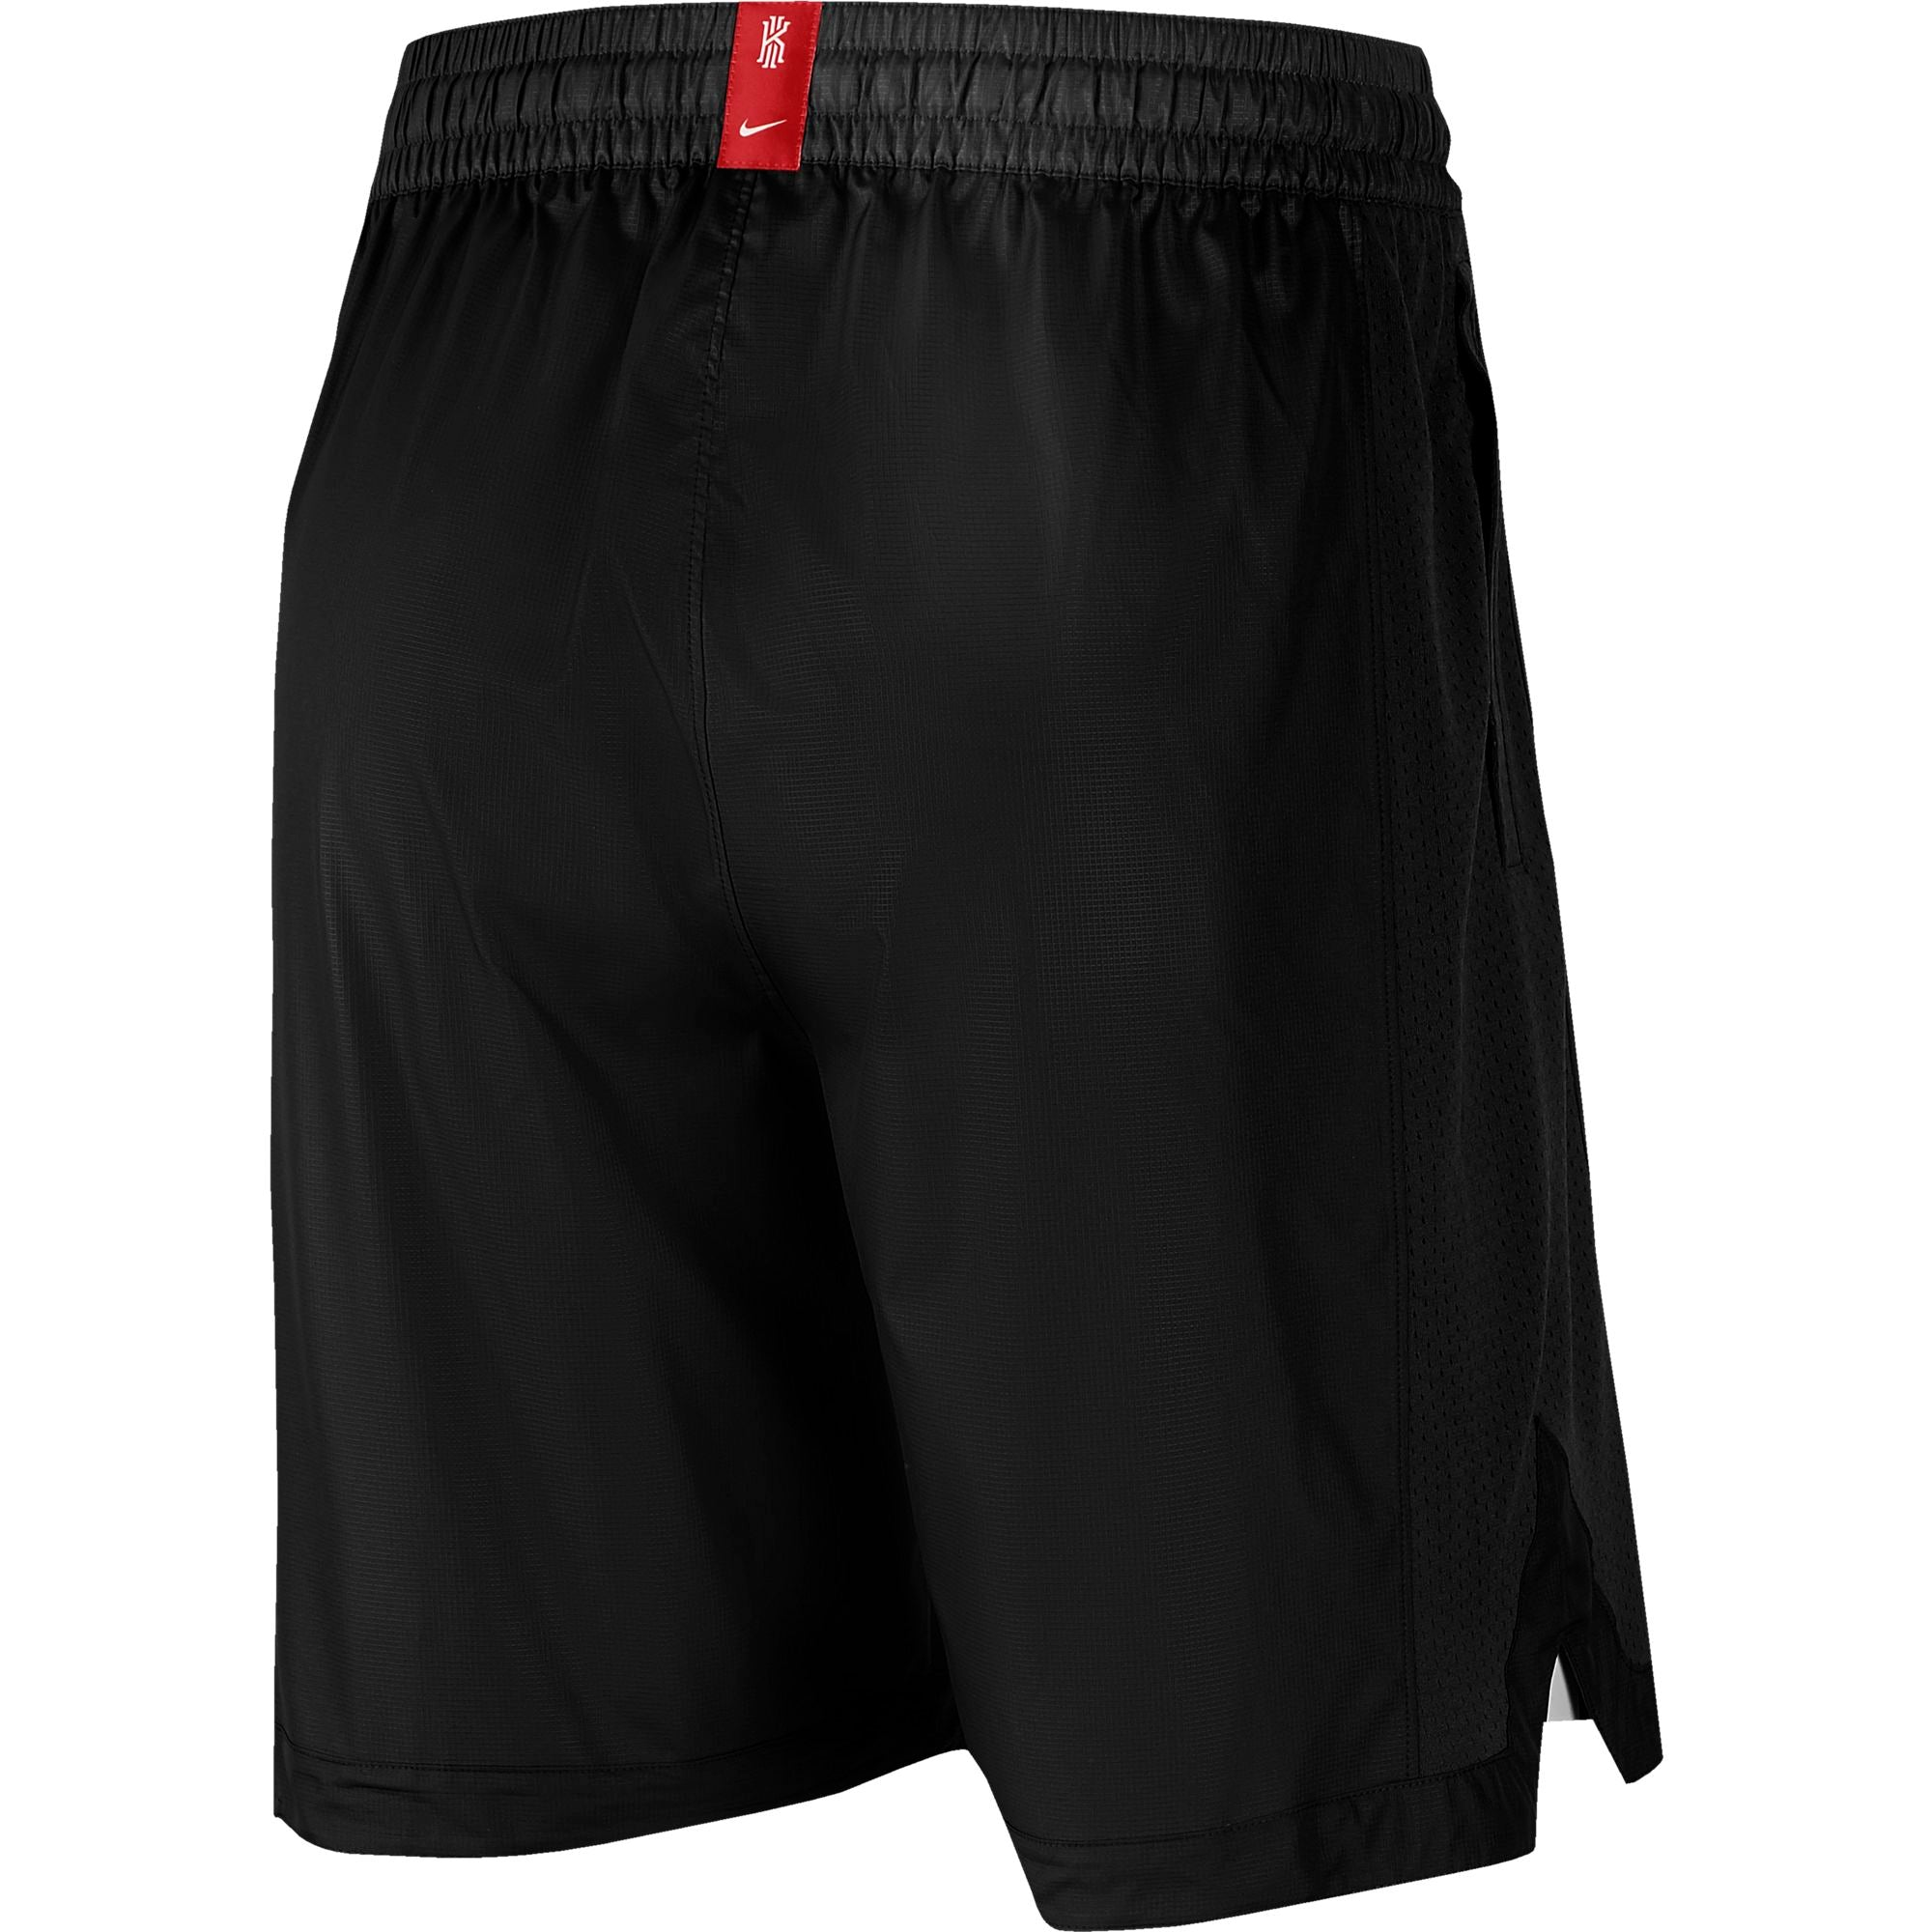 Nike Kyrie Dri-Fit Basketball Shorts - Black/University Red